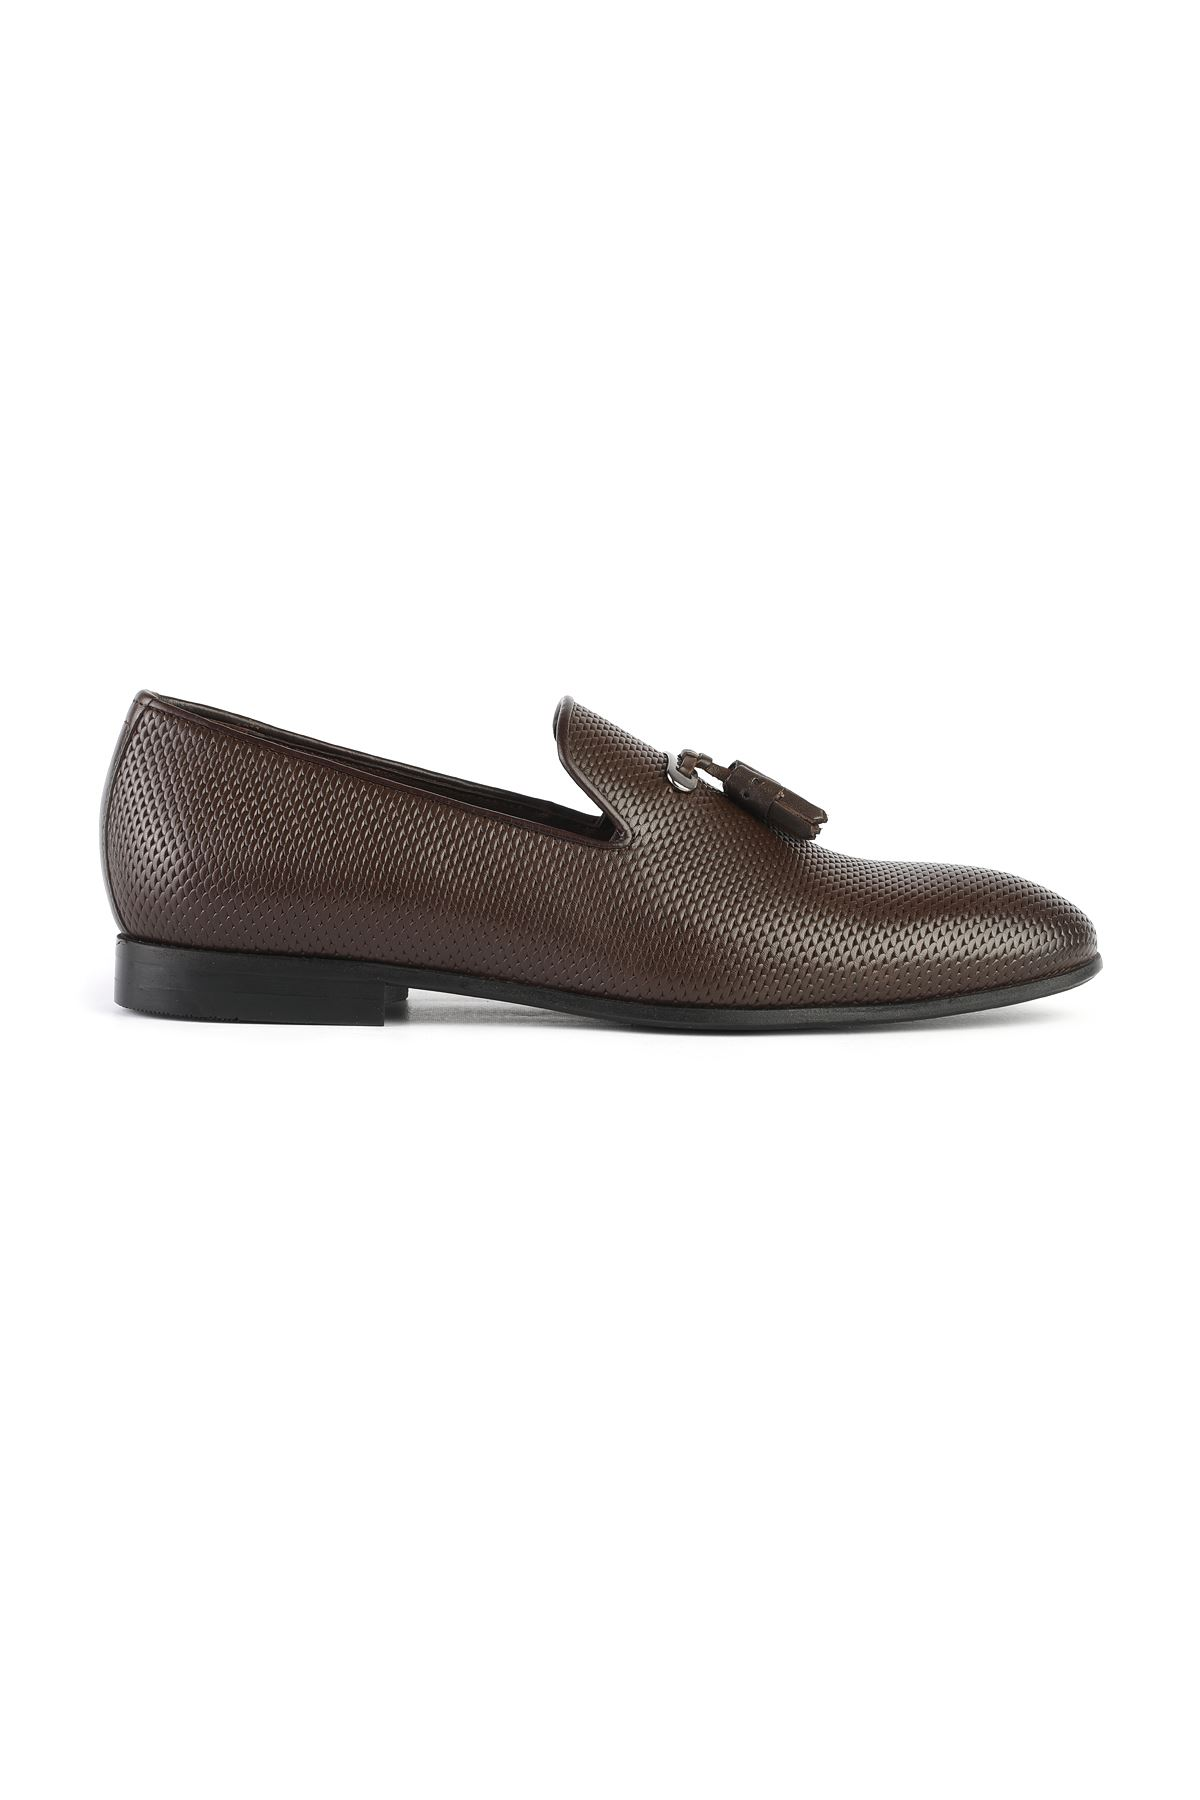 Libero 3324 Brown Loafer Shoes